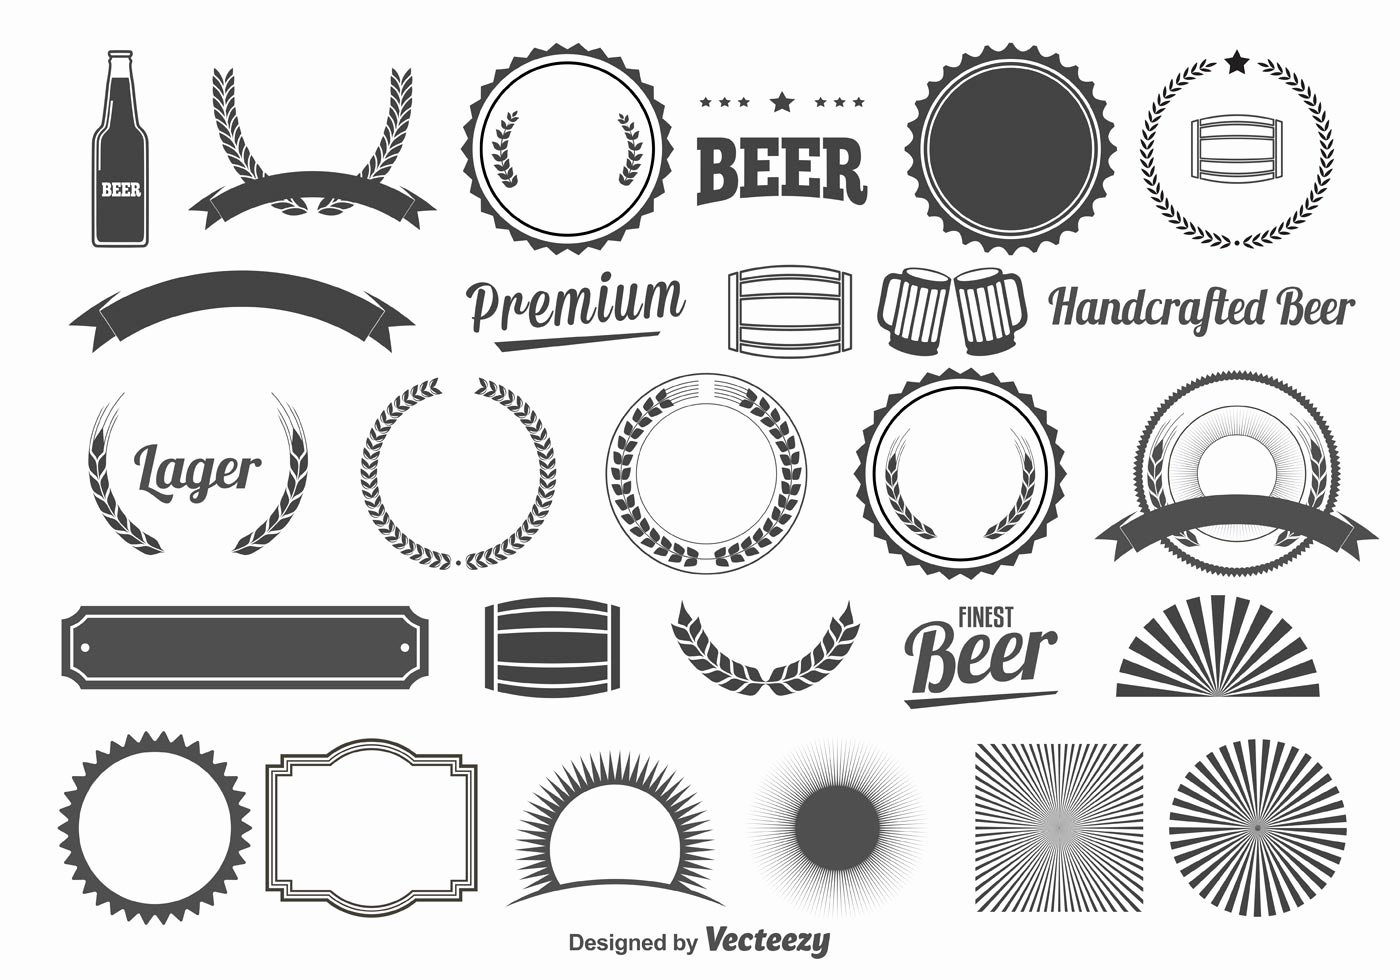 Beer Can Design Template New Beer Design Elements Download Free Vector Art Stock